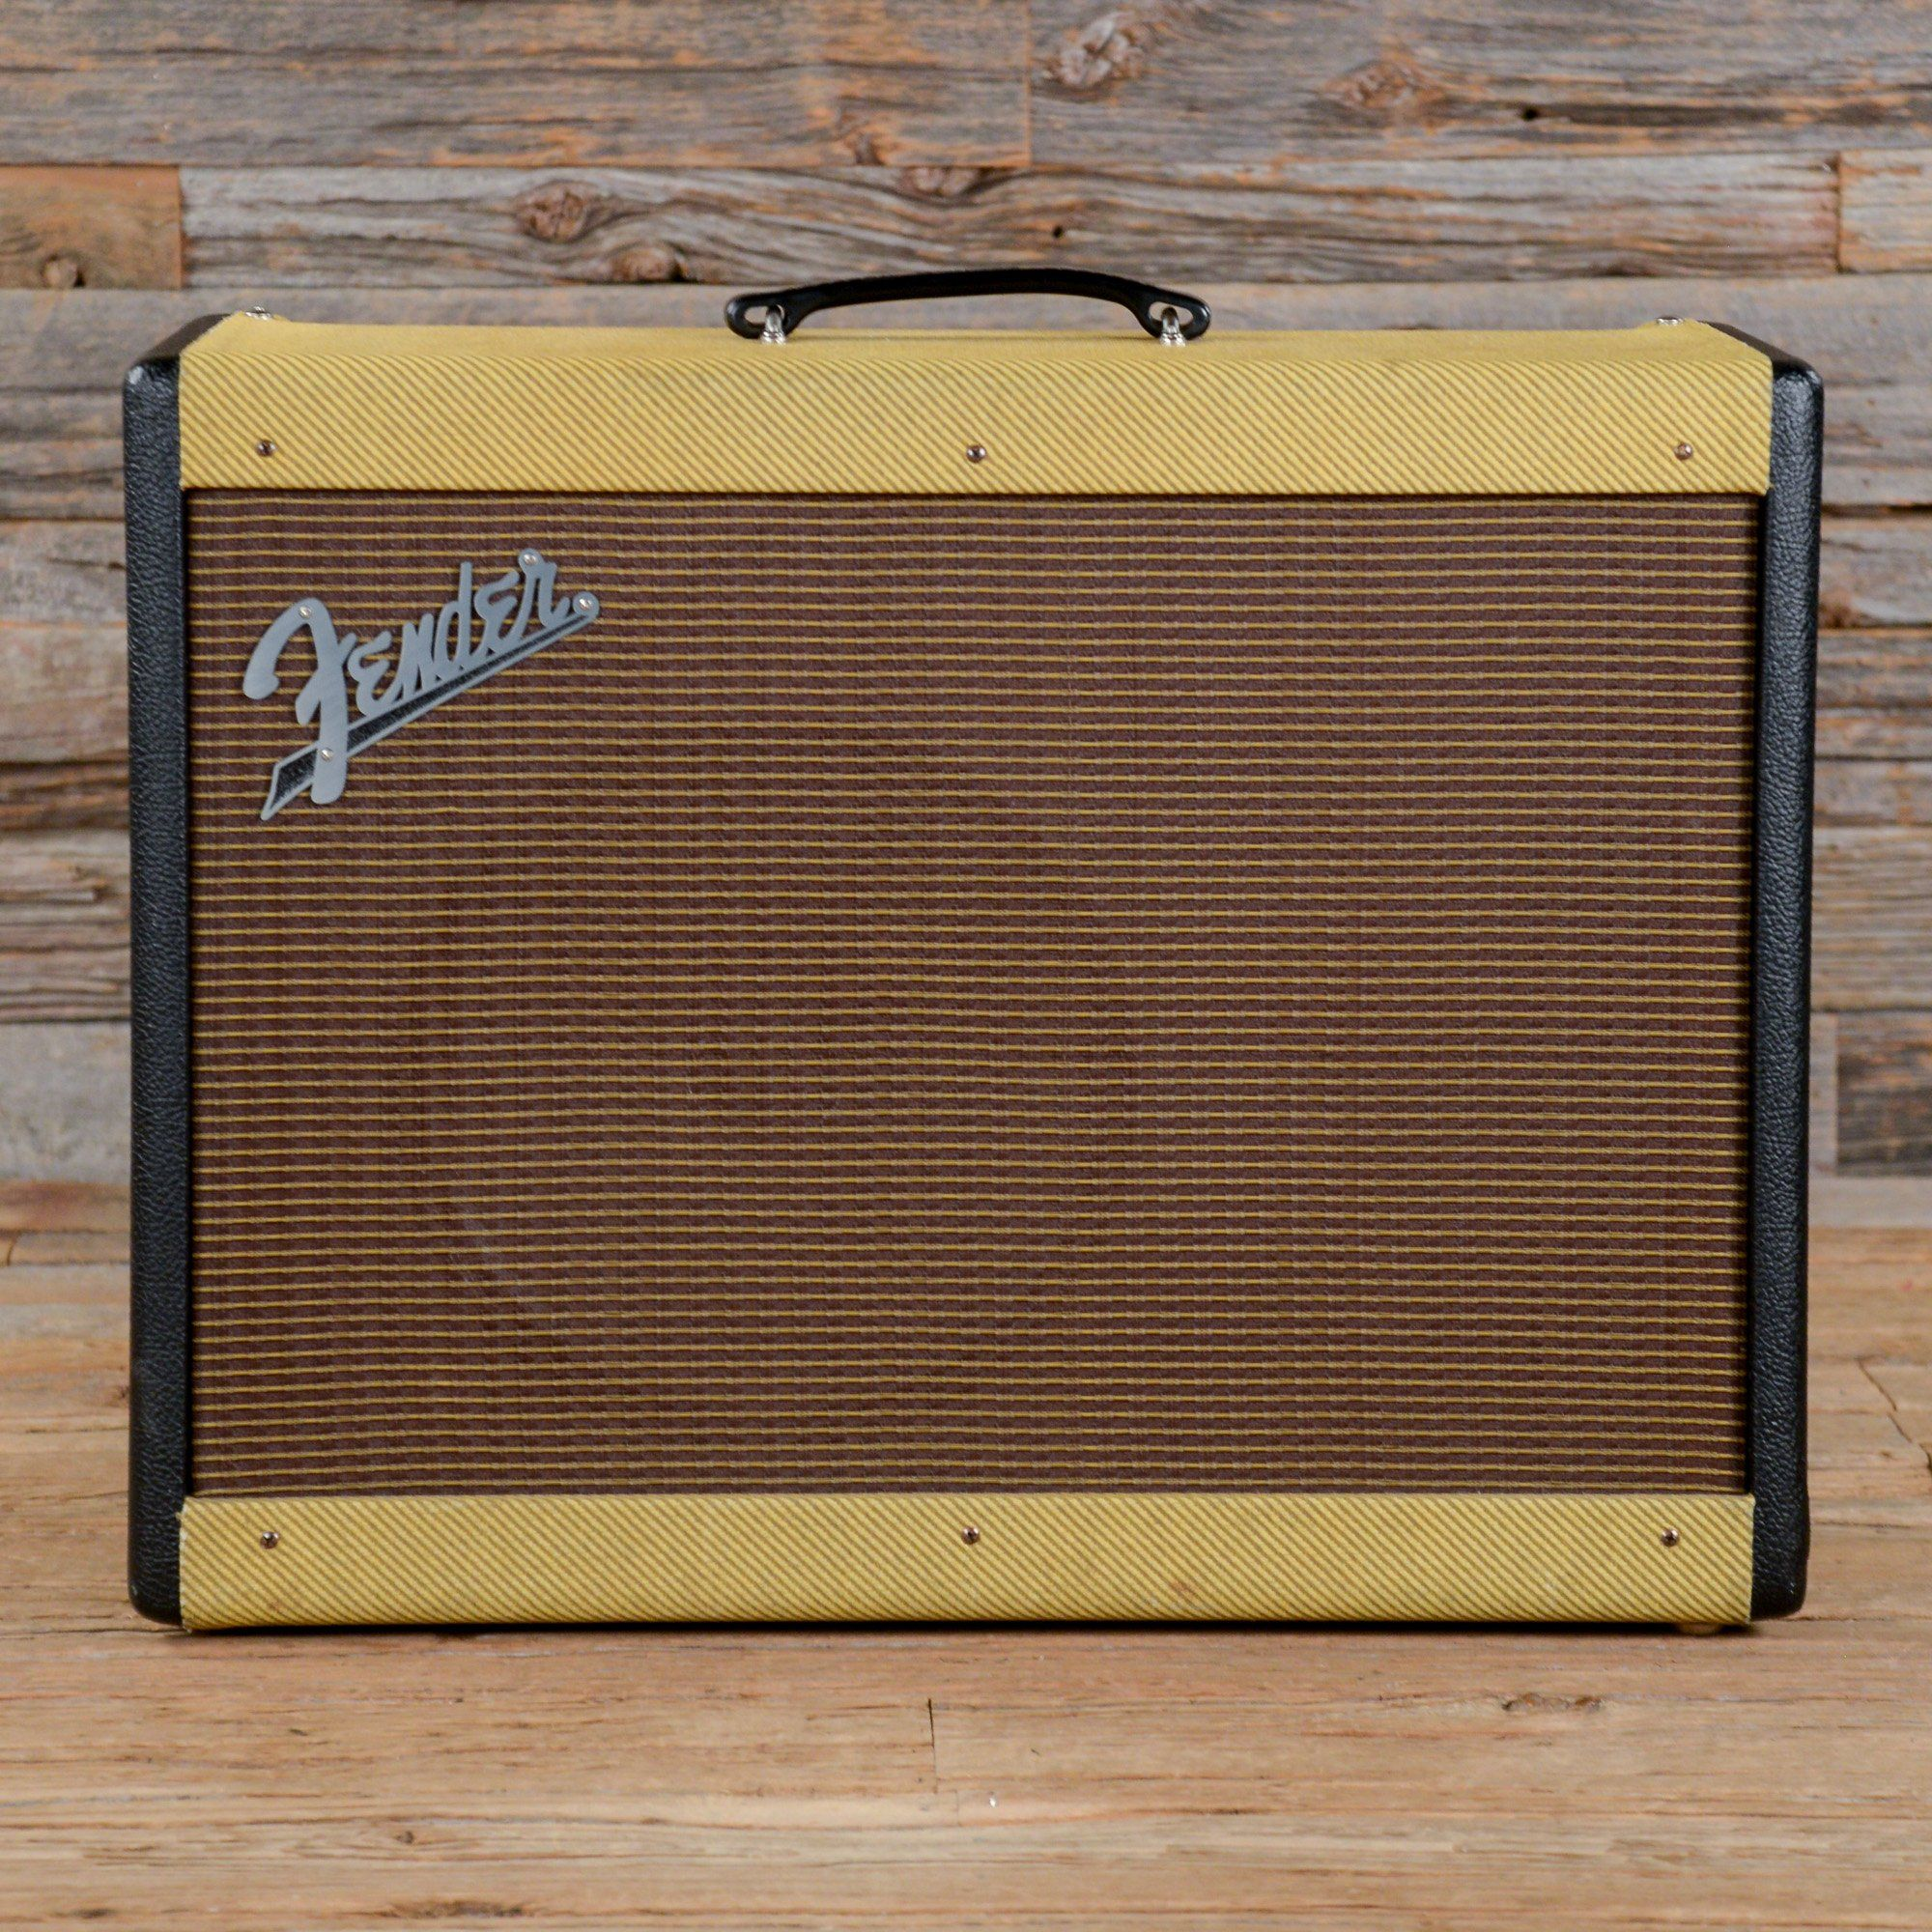 Fender Limited Edition Hot Rod Deluxe III FSR 40W 1x12 Combo w ...